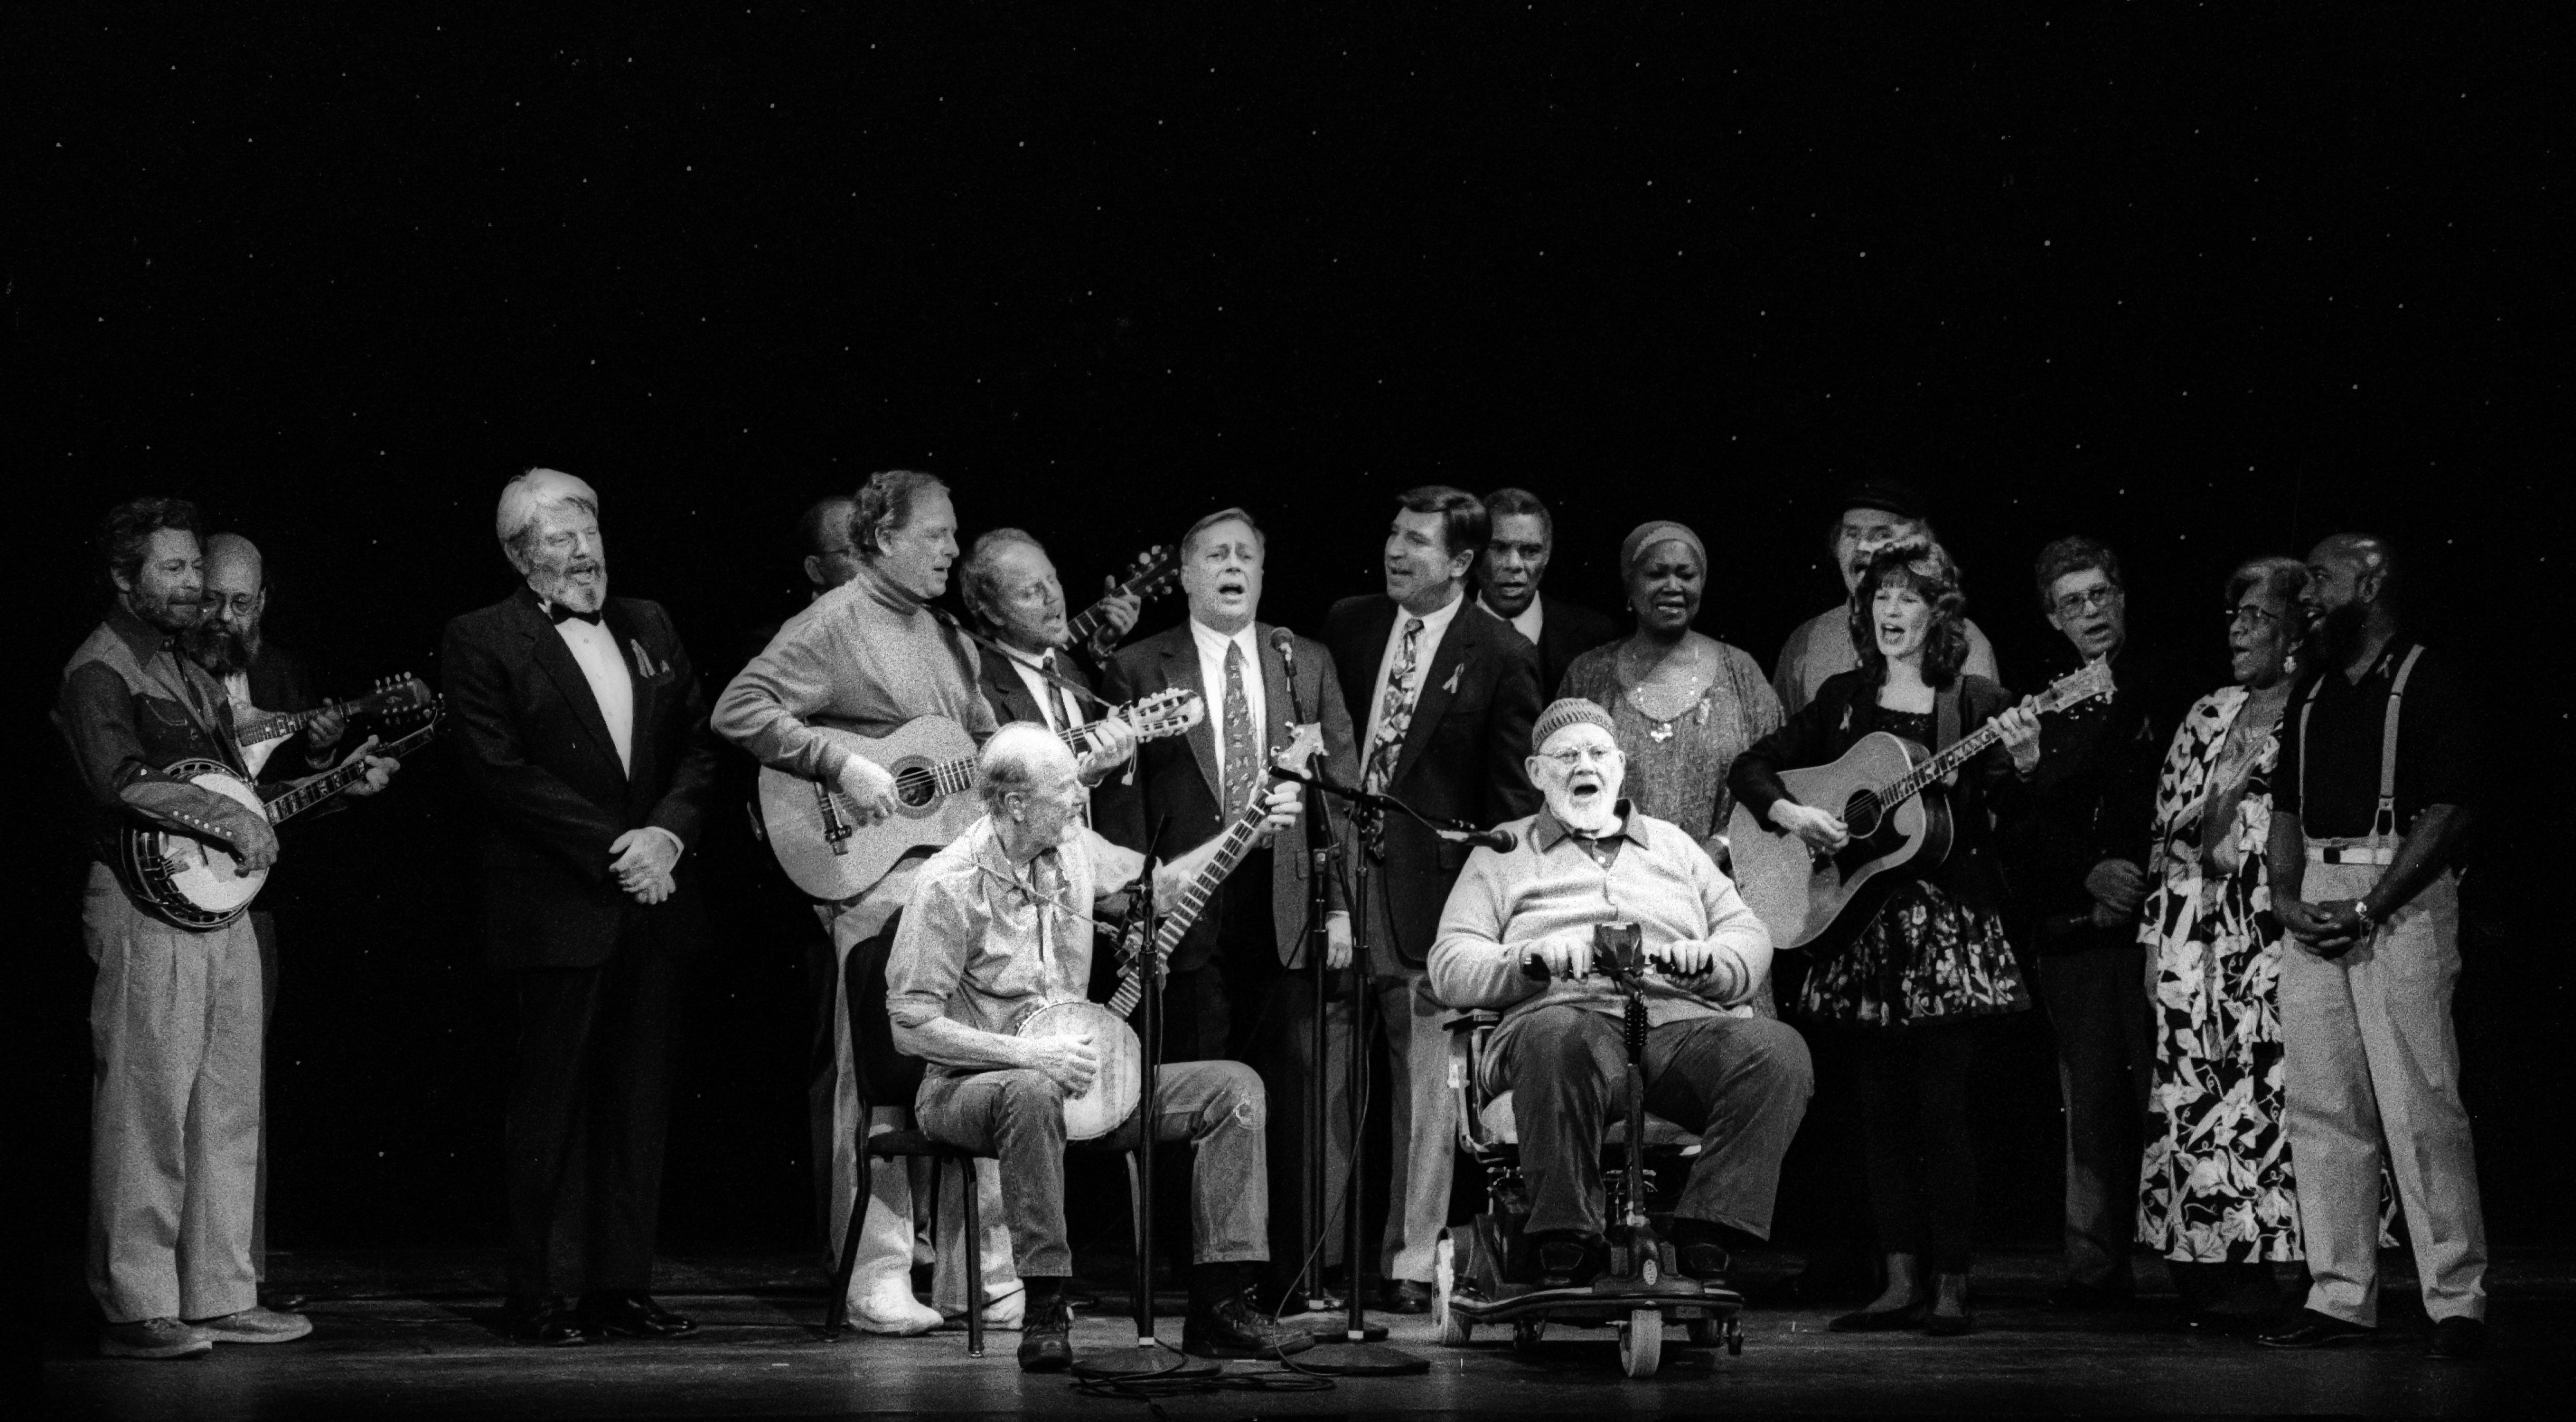 Folksongs USA Benefit At The 92nd St Y